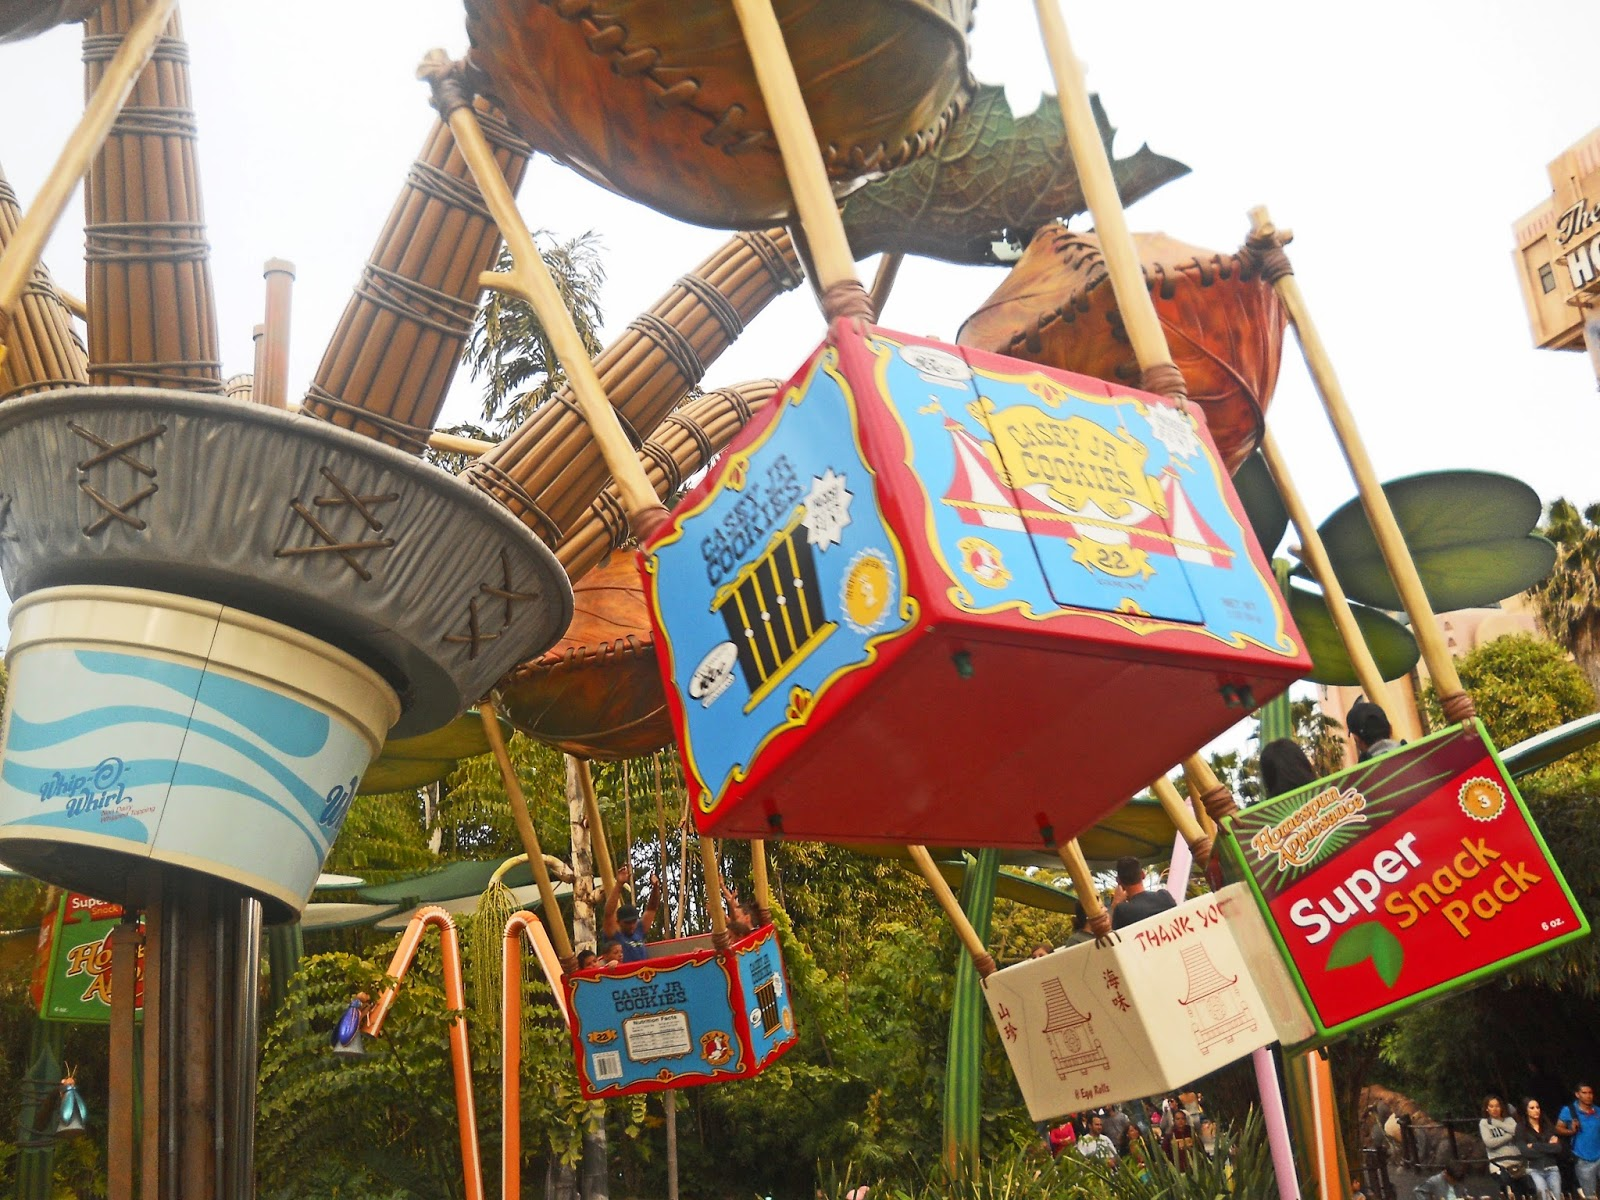 Best rides for preschoolers at Disneyland from LoveOurDisney.com